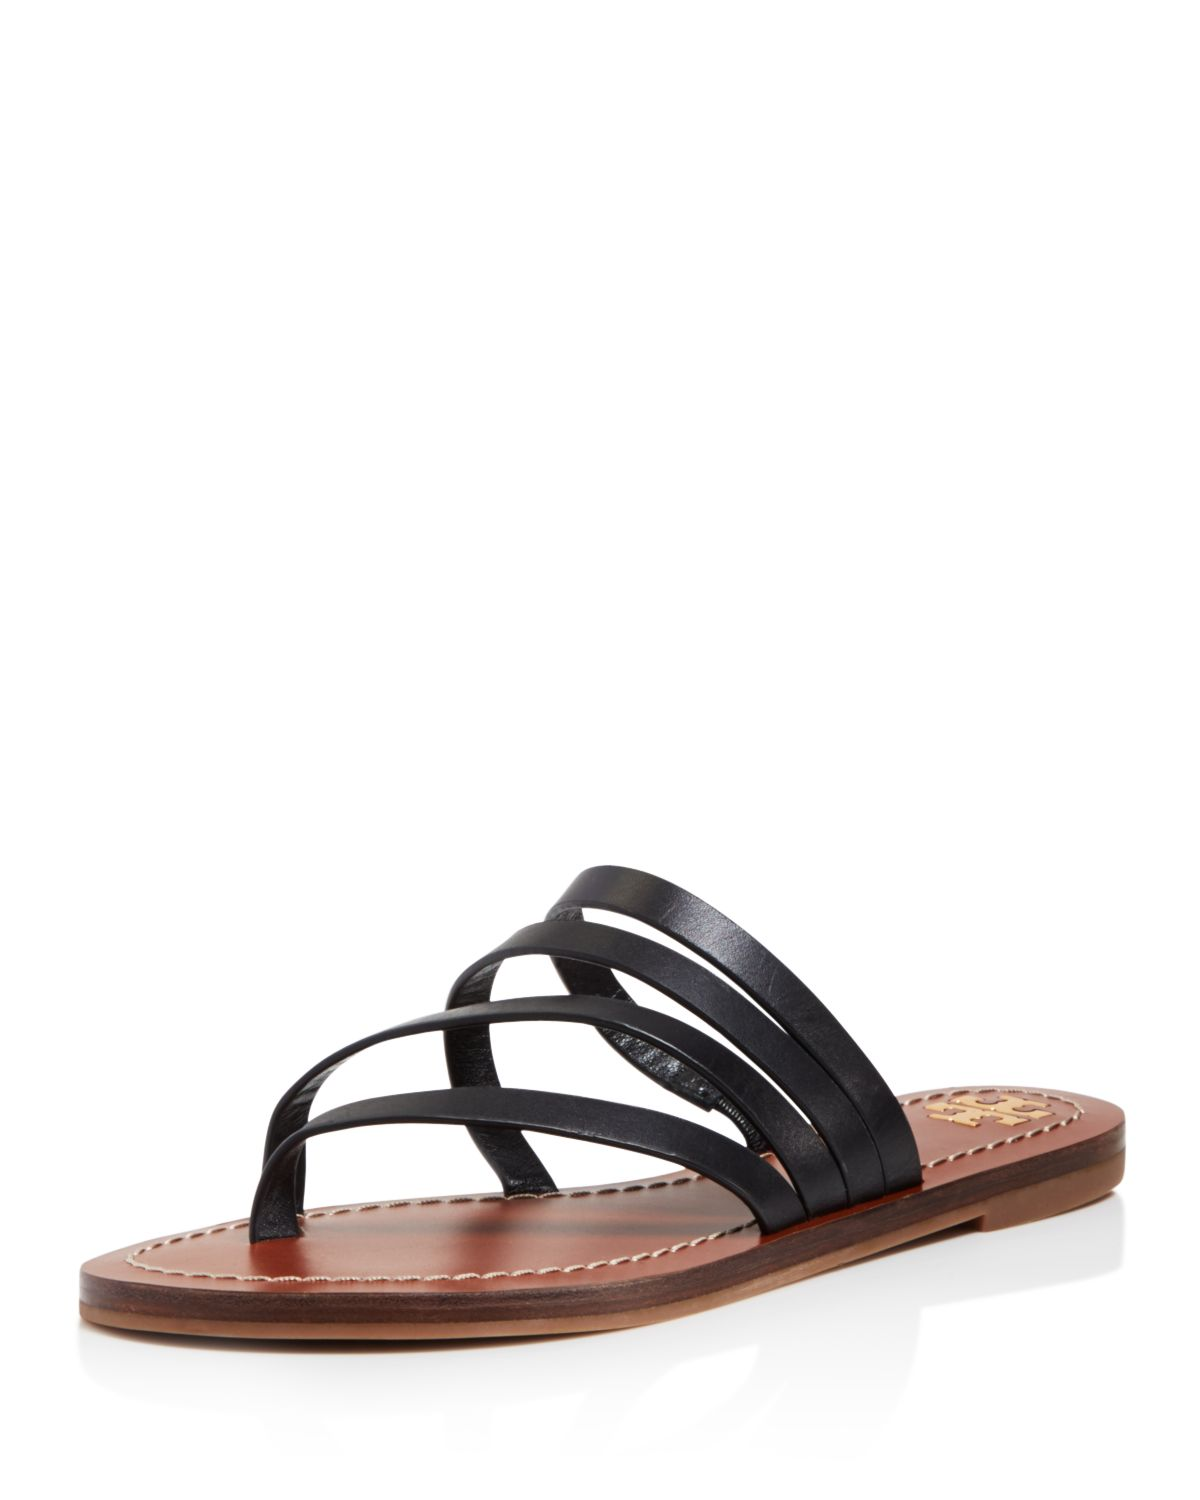 Tory Burch Women's Patos Strappy Leather Thong Sandals